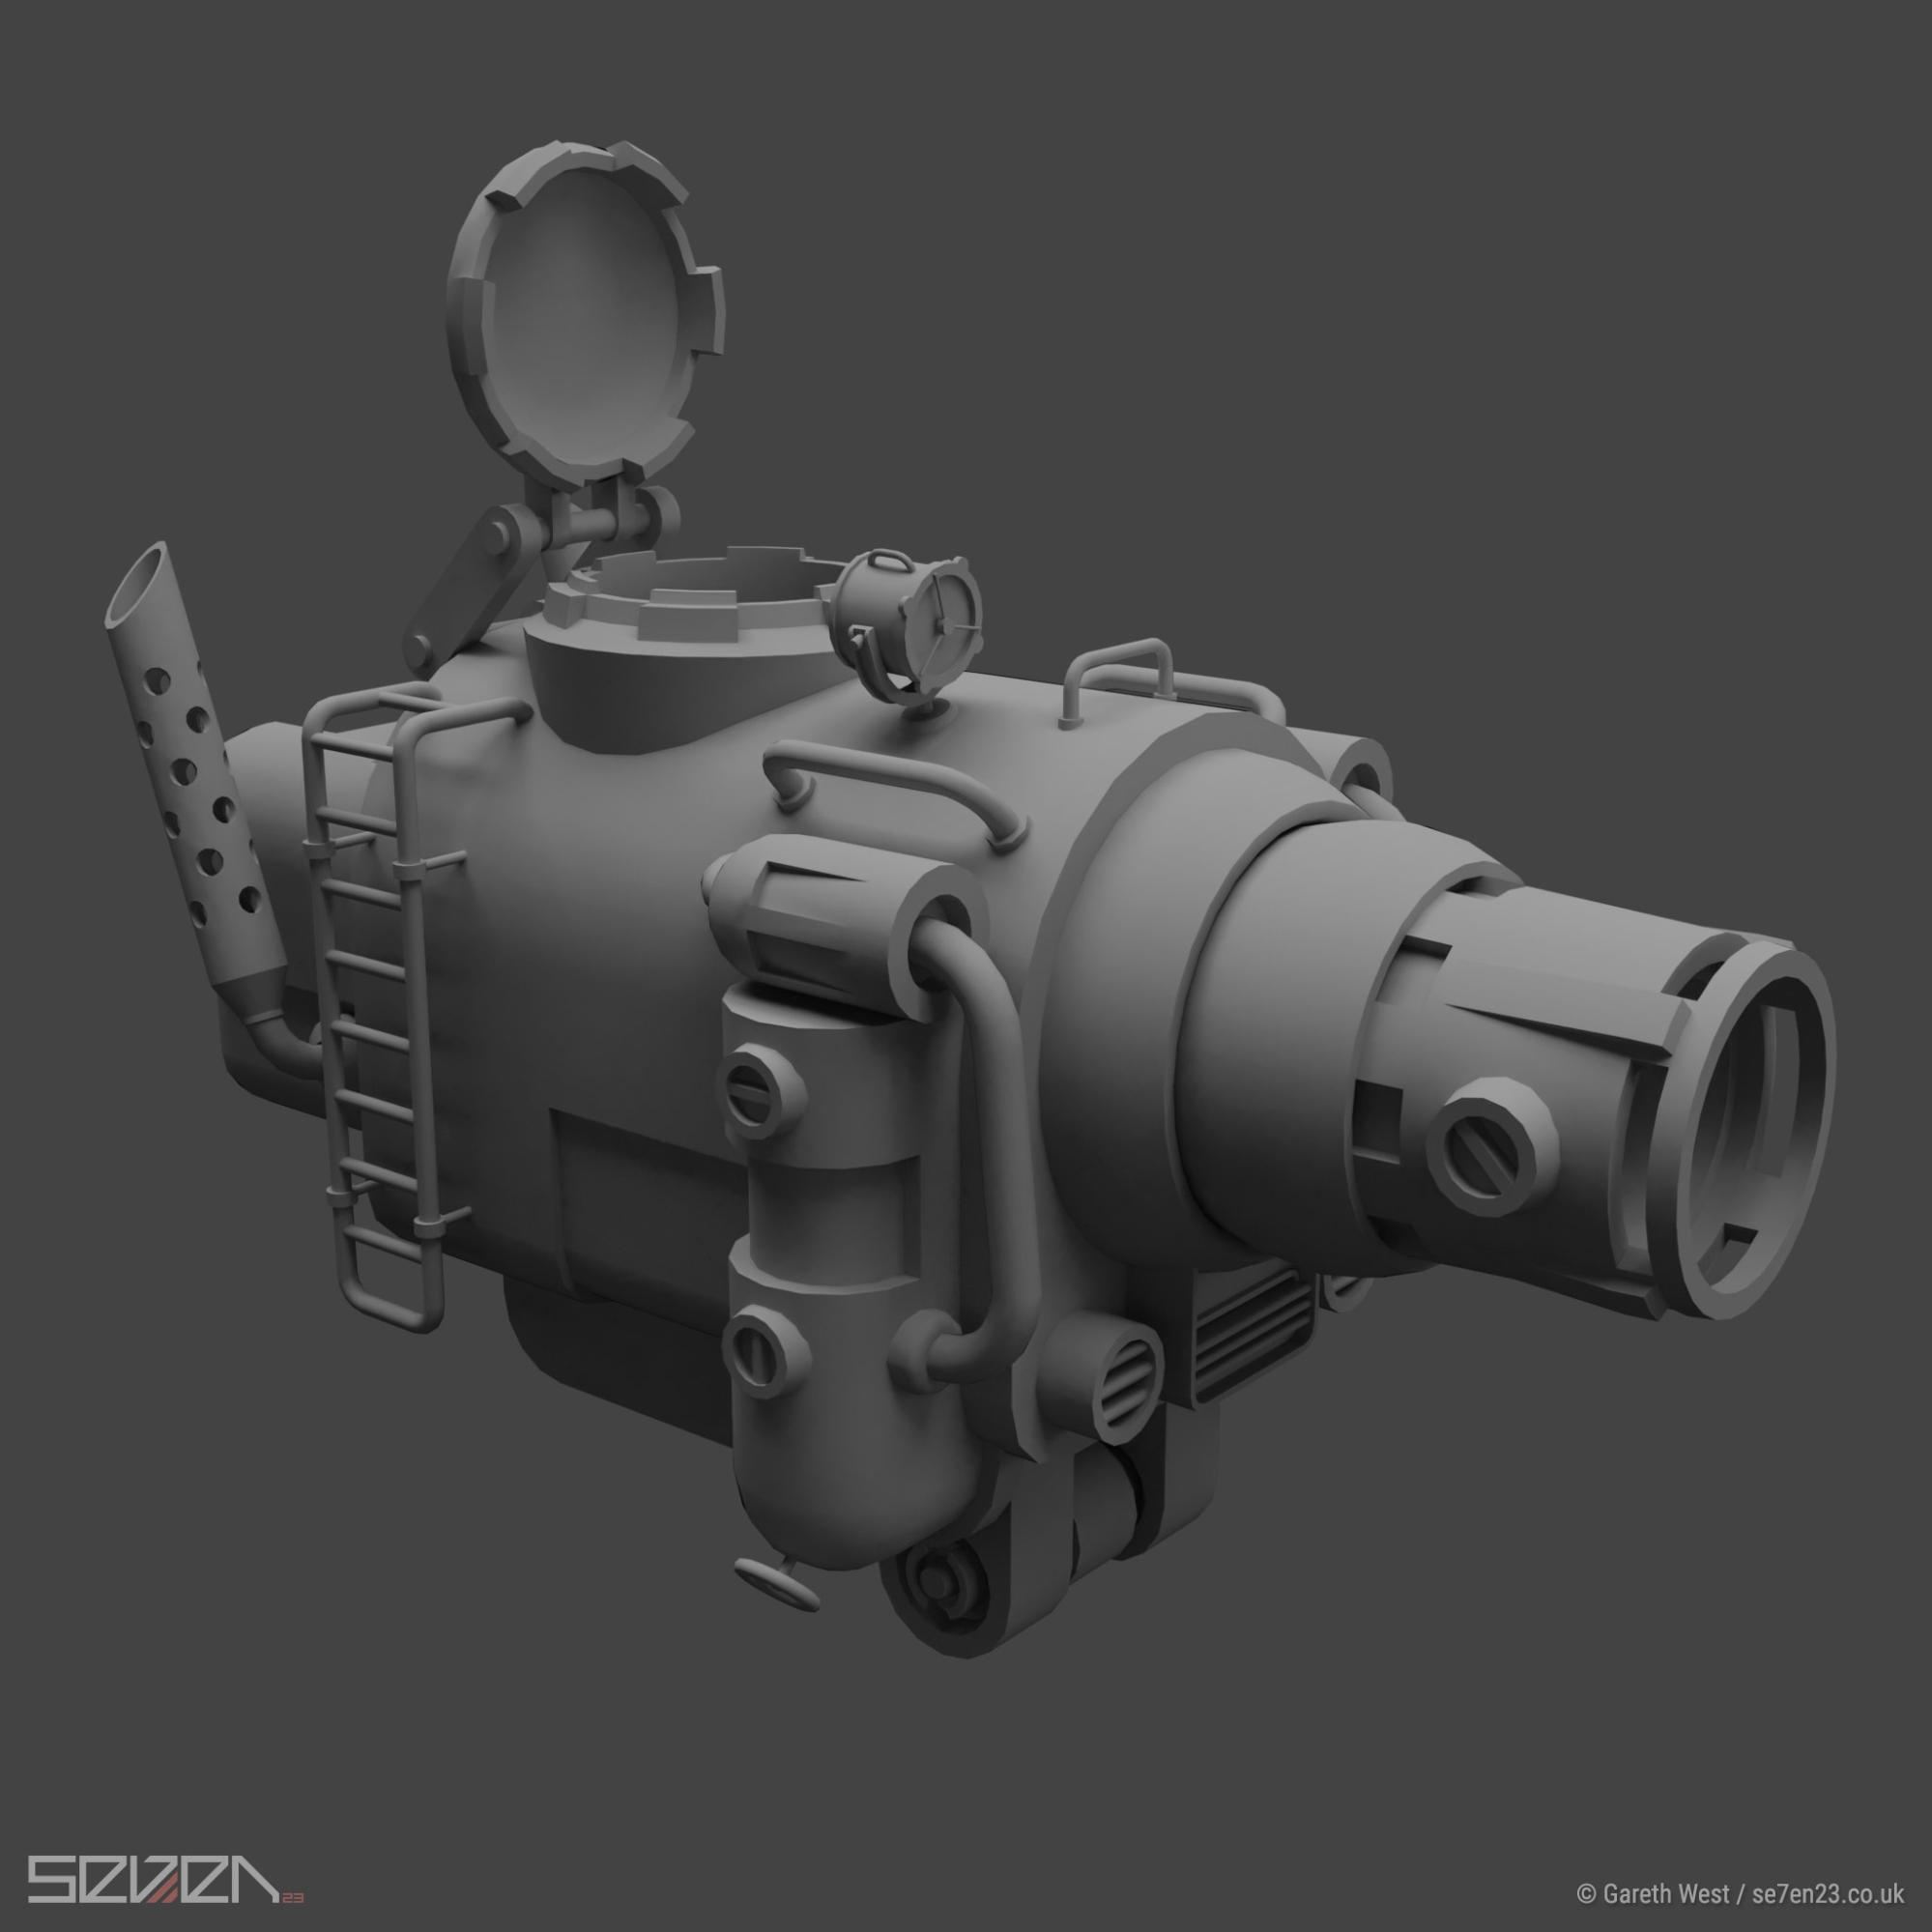 Low Poly Dieselpunk Airboat/Gunship vents